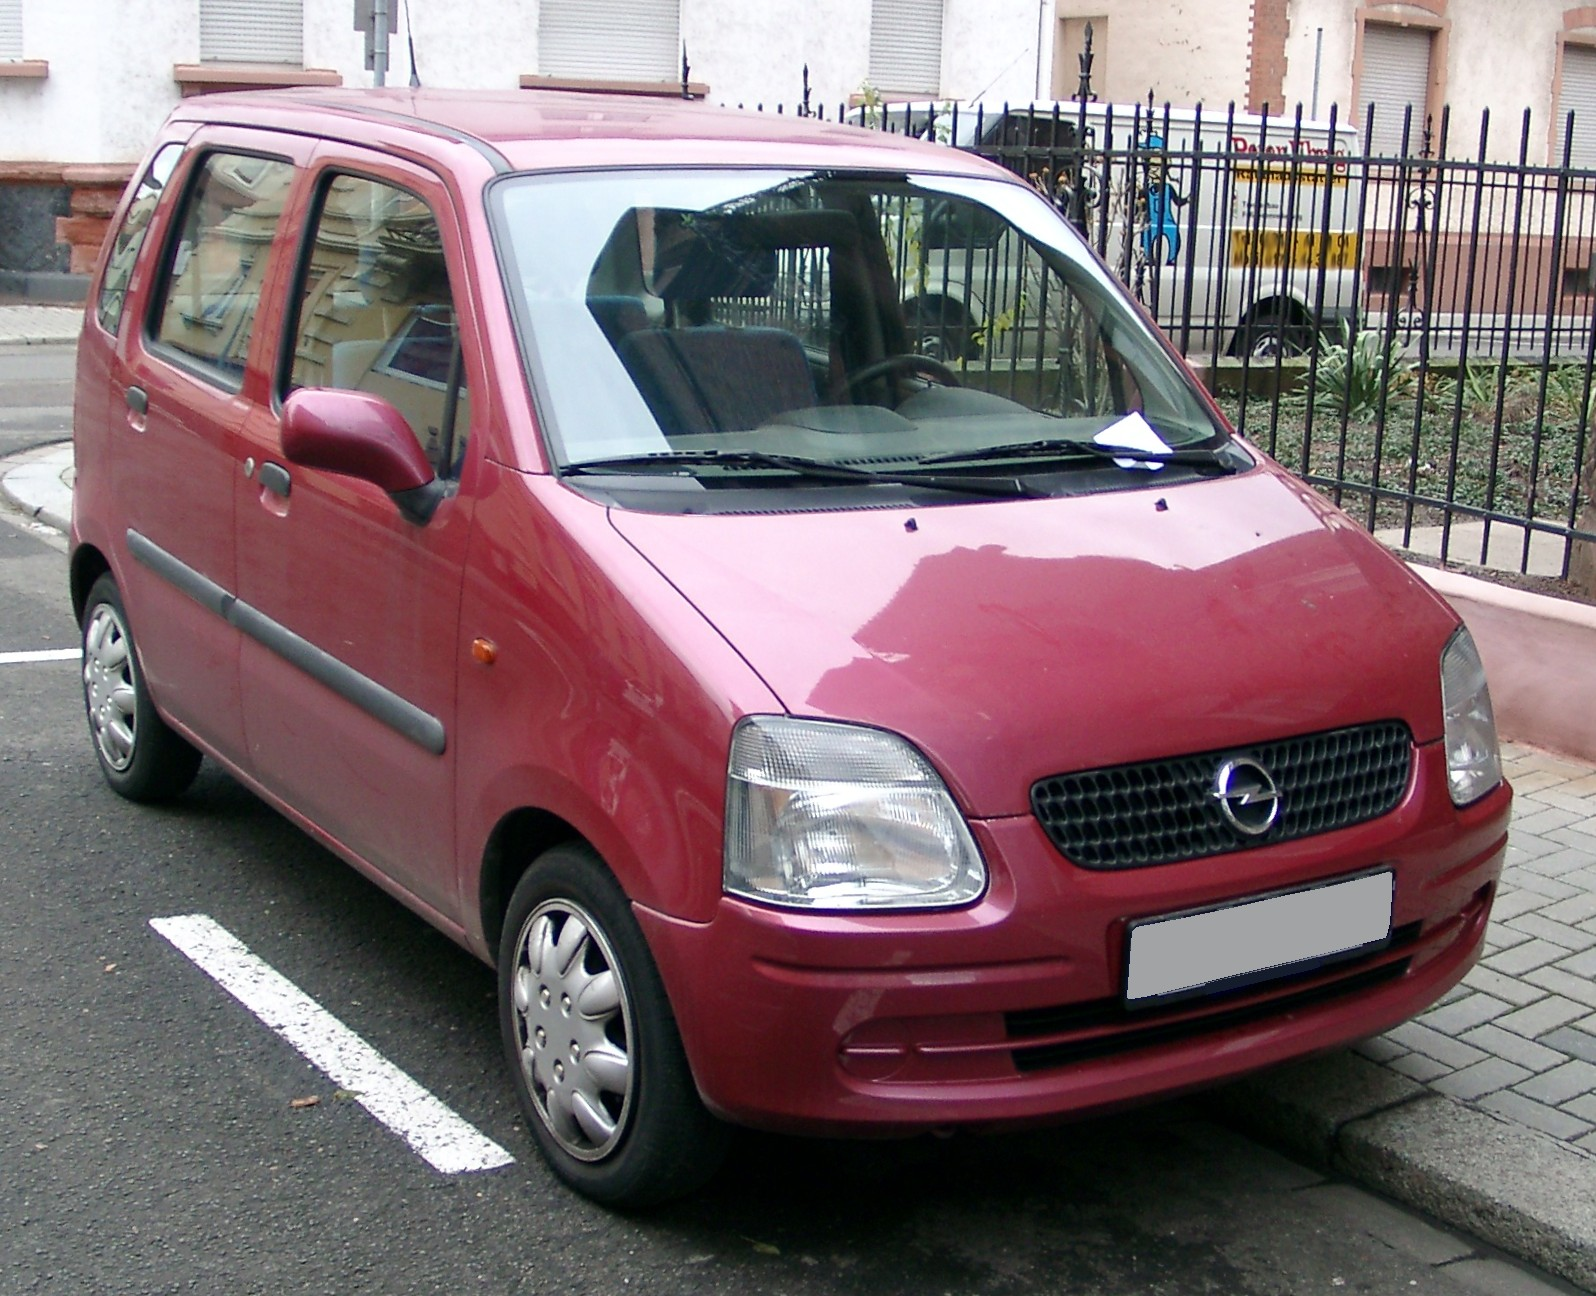 2000 Vauxhall Agila Photos Informations Articles Wiring Diagram 1